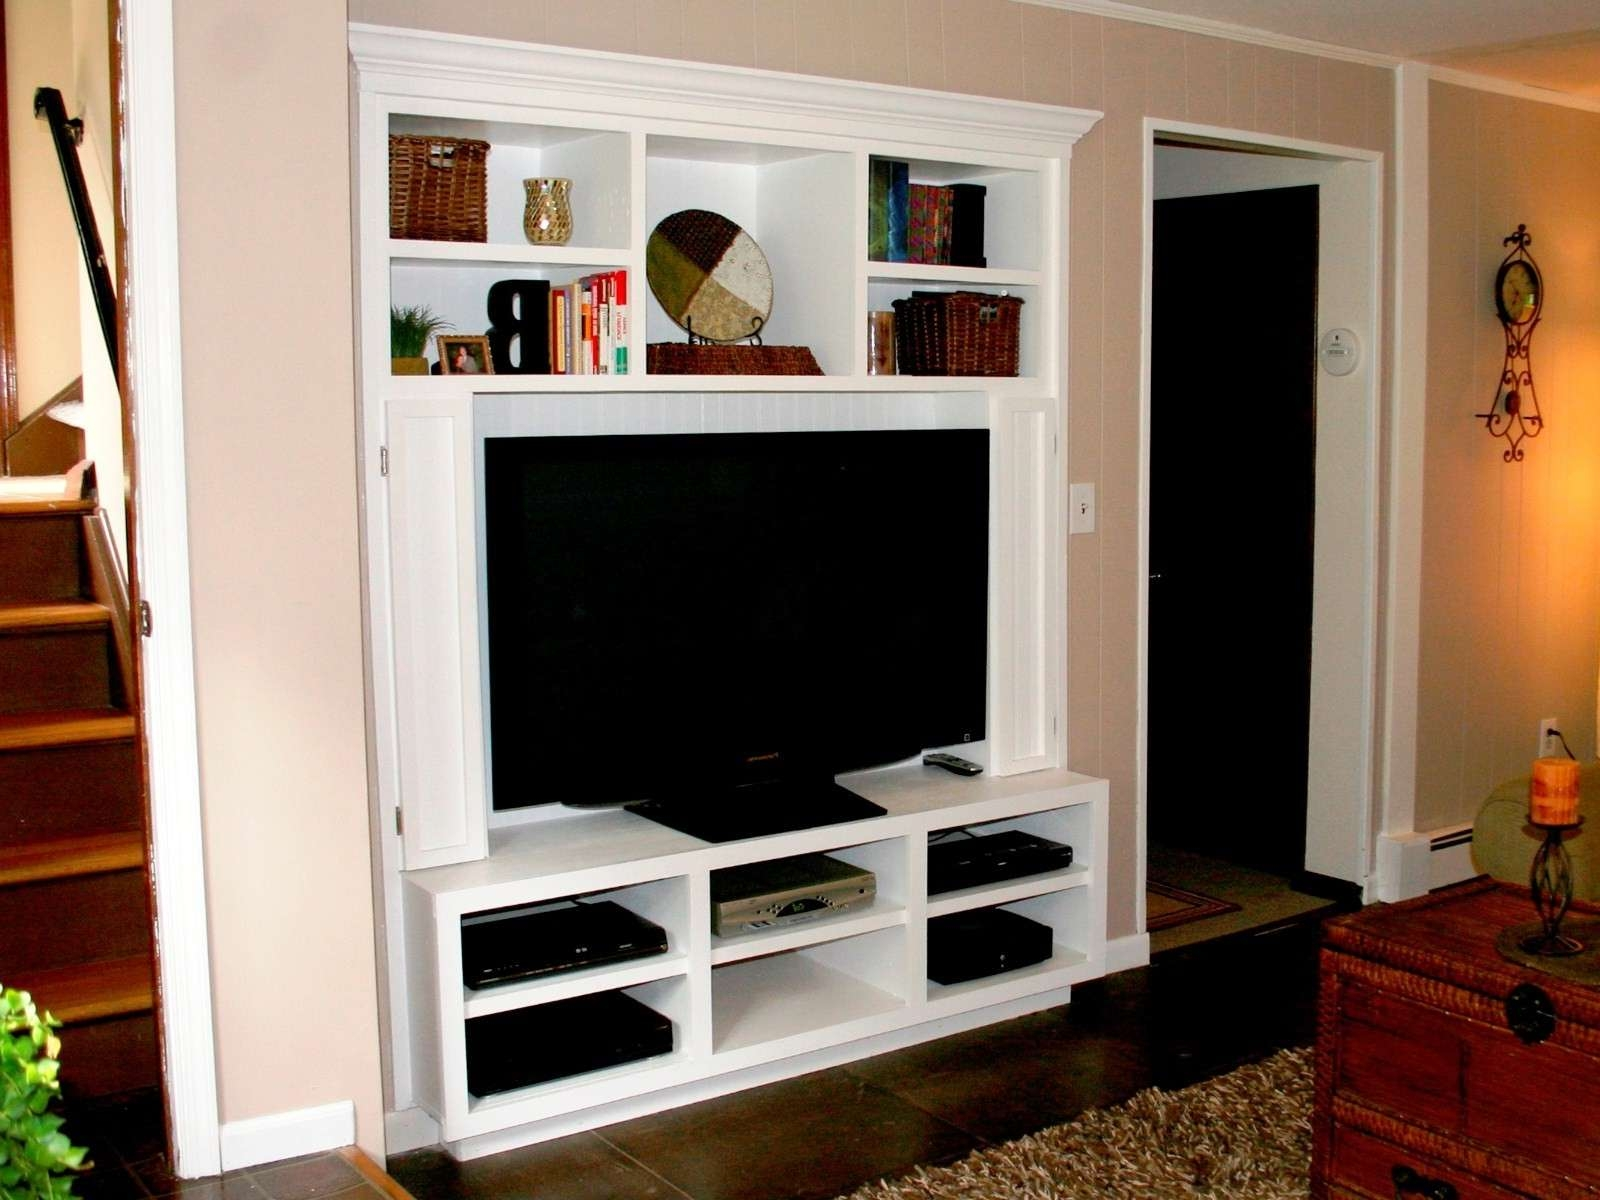 Wall Mount Flat Screen Tv Cabinet | Nytexas In Wall Mounted Tv Cabinets For Flat Screens (View 15 of 20)